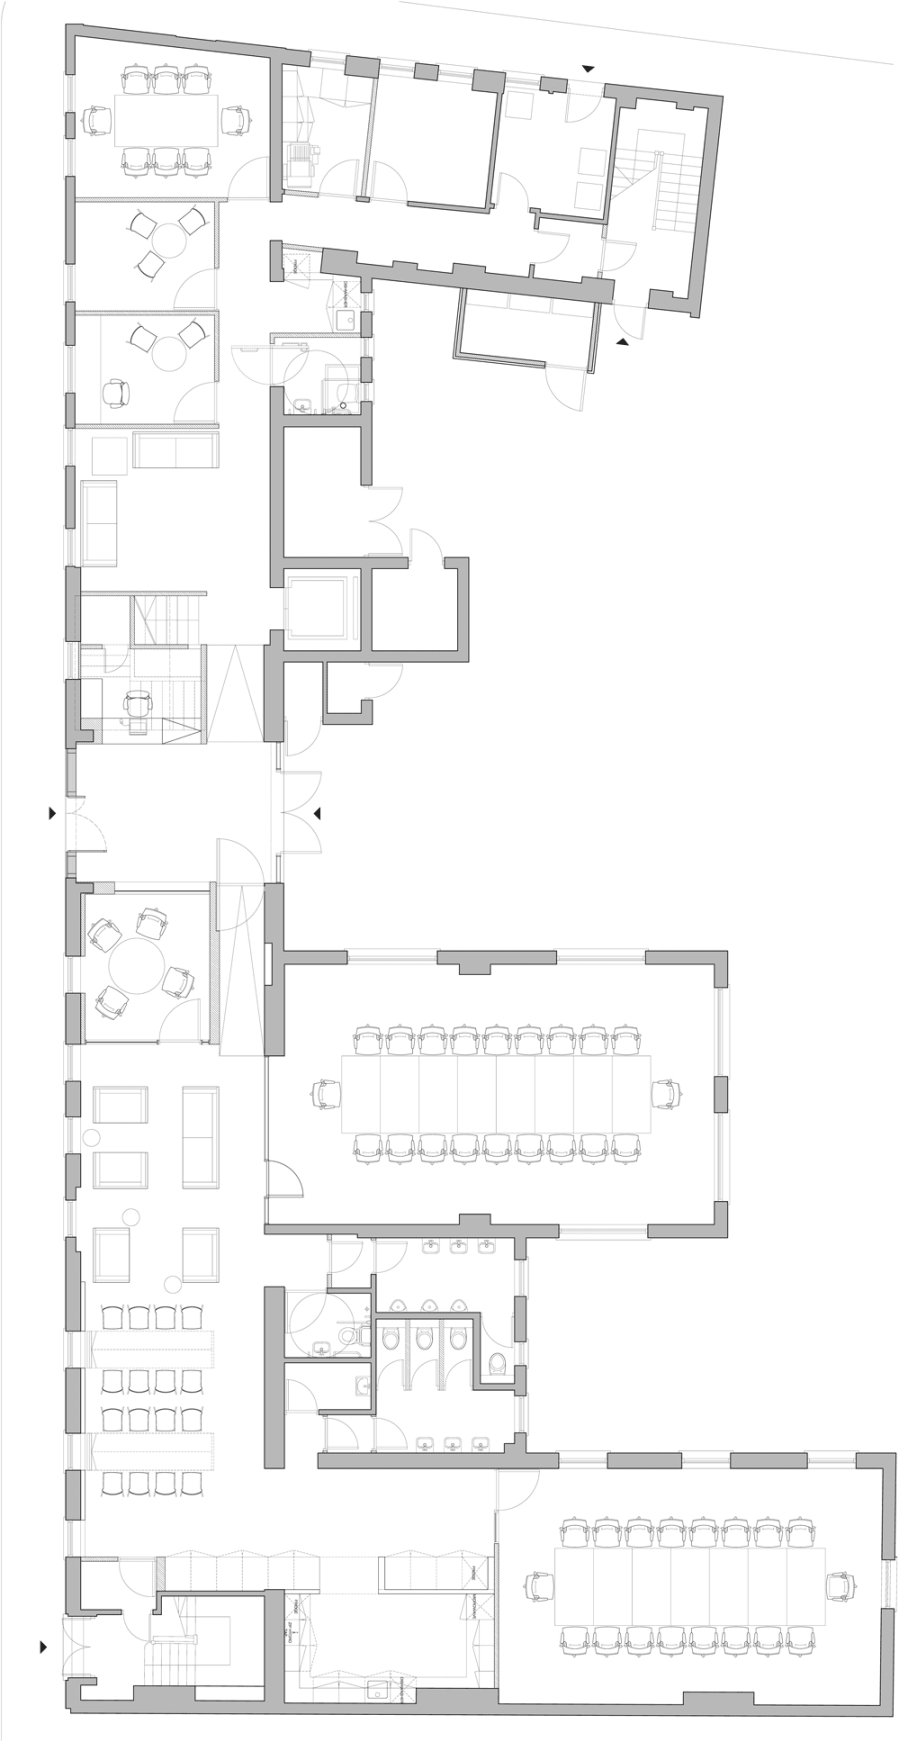 Floor plan of Arts Council England